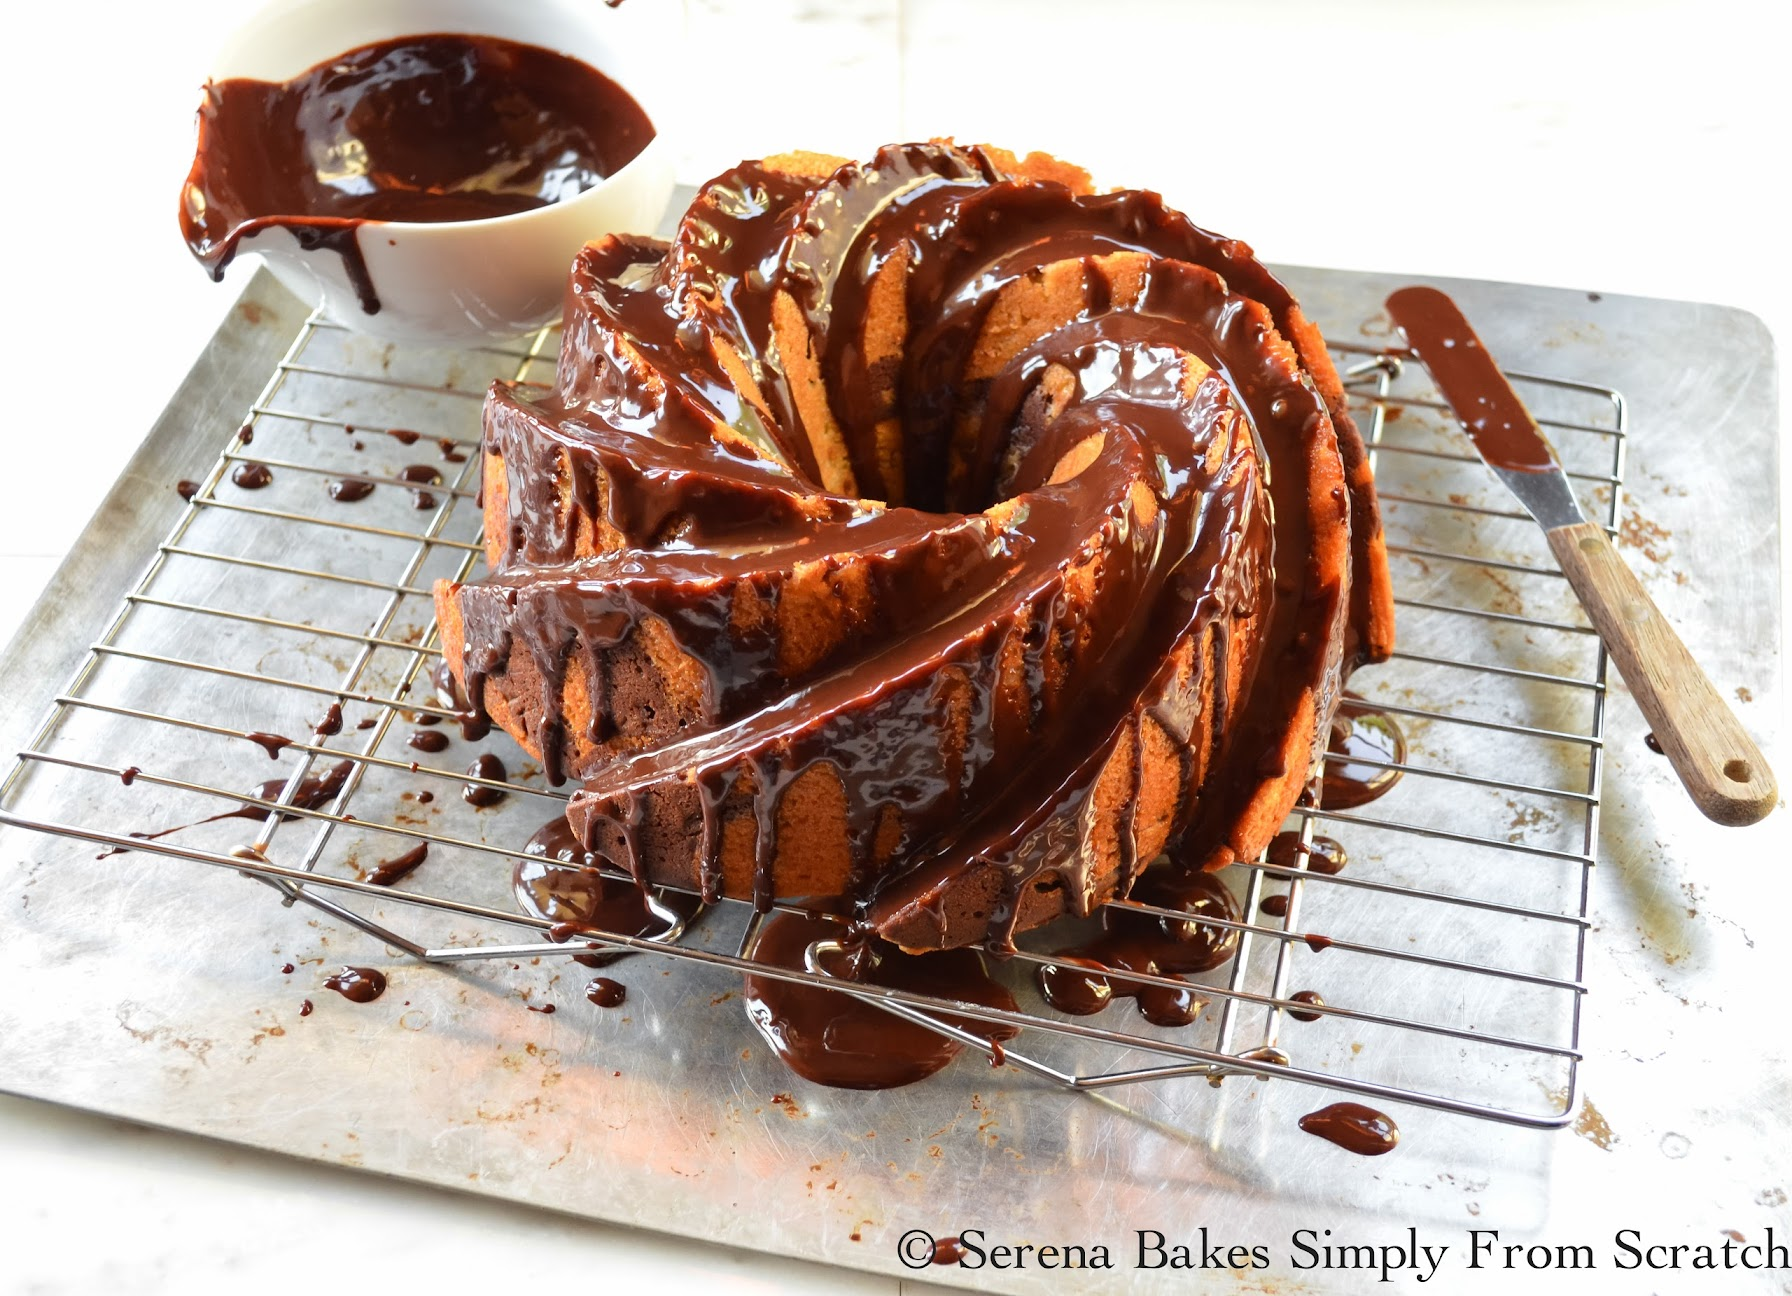 Buttermilk Marble Bundt Cake cover with glossy chocolate glaze.